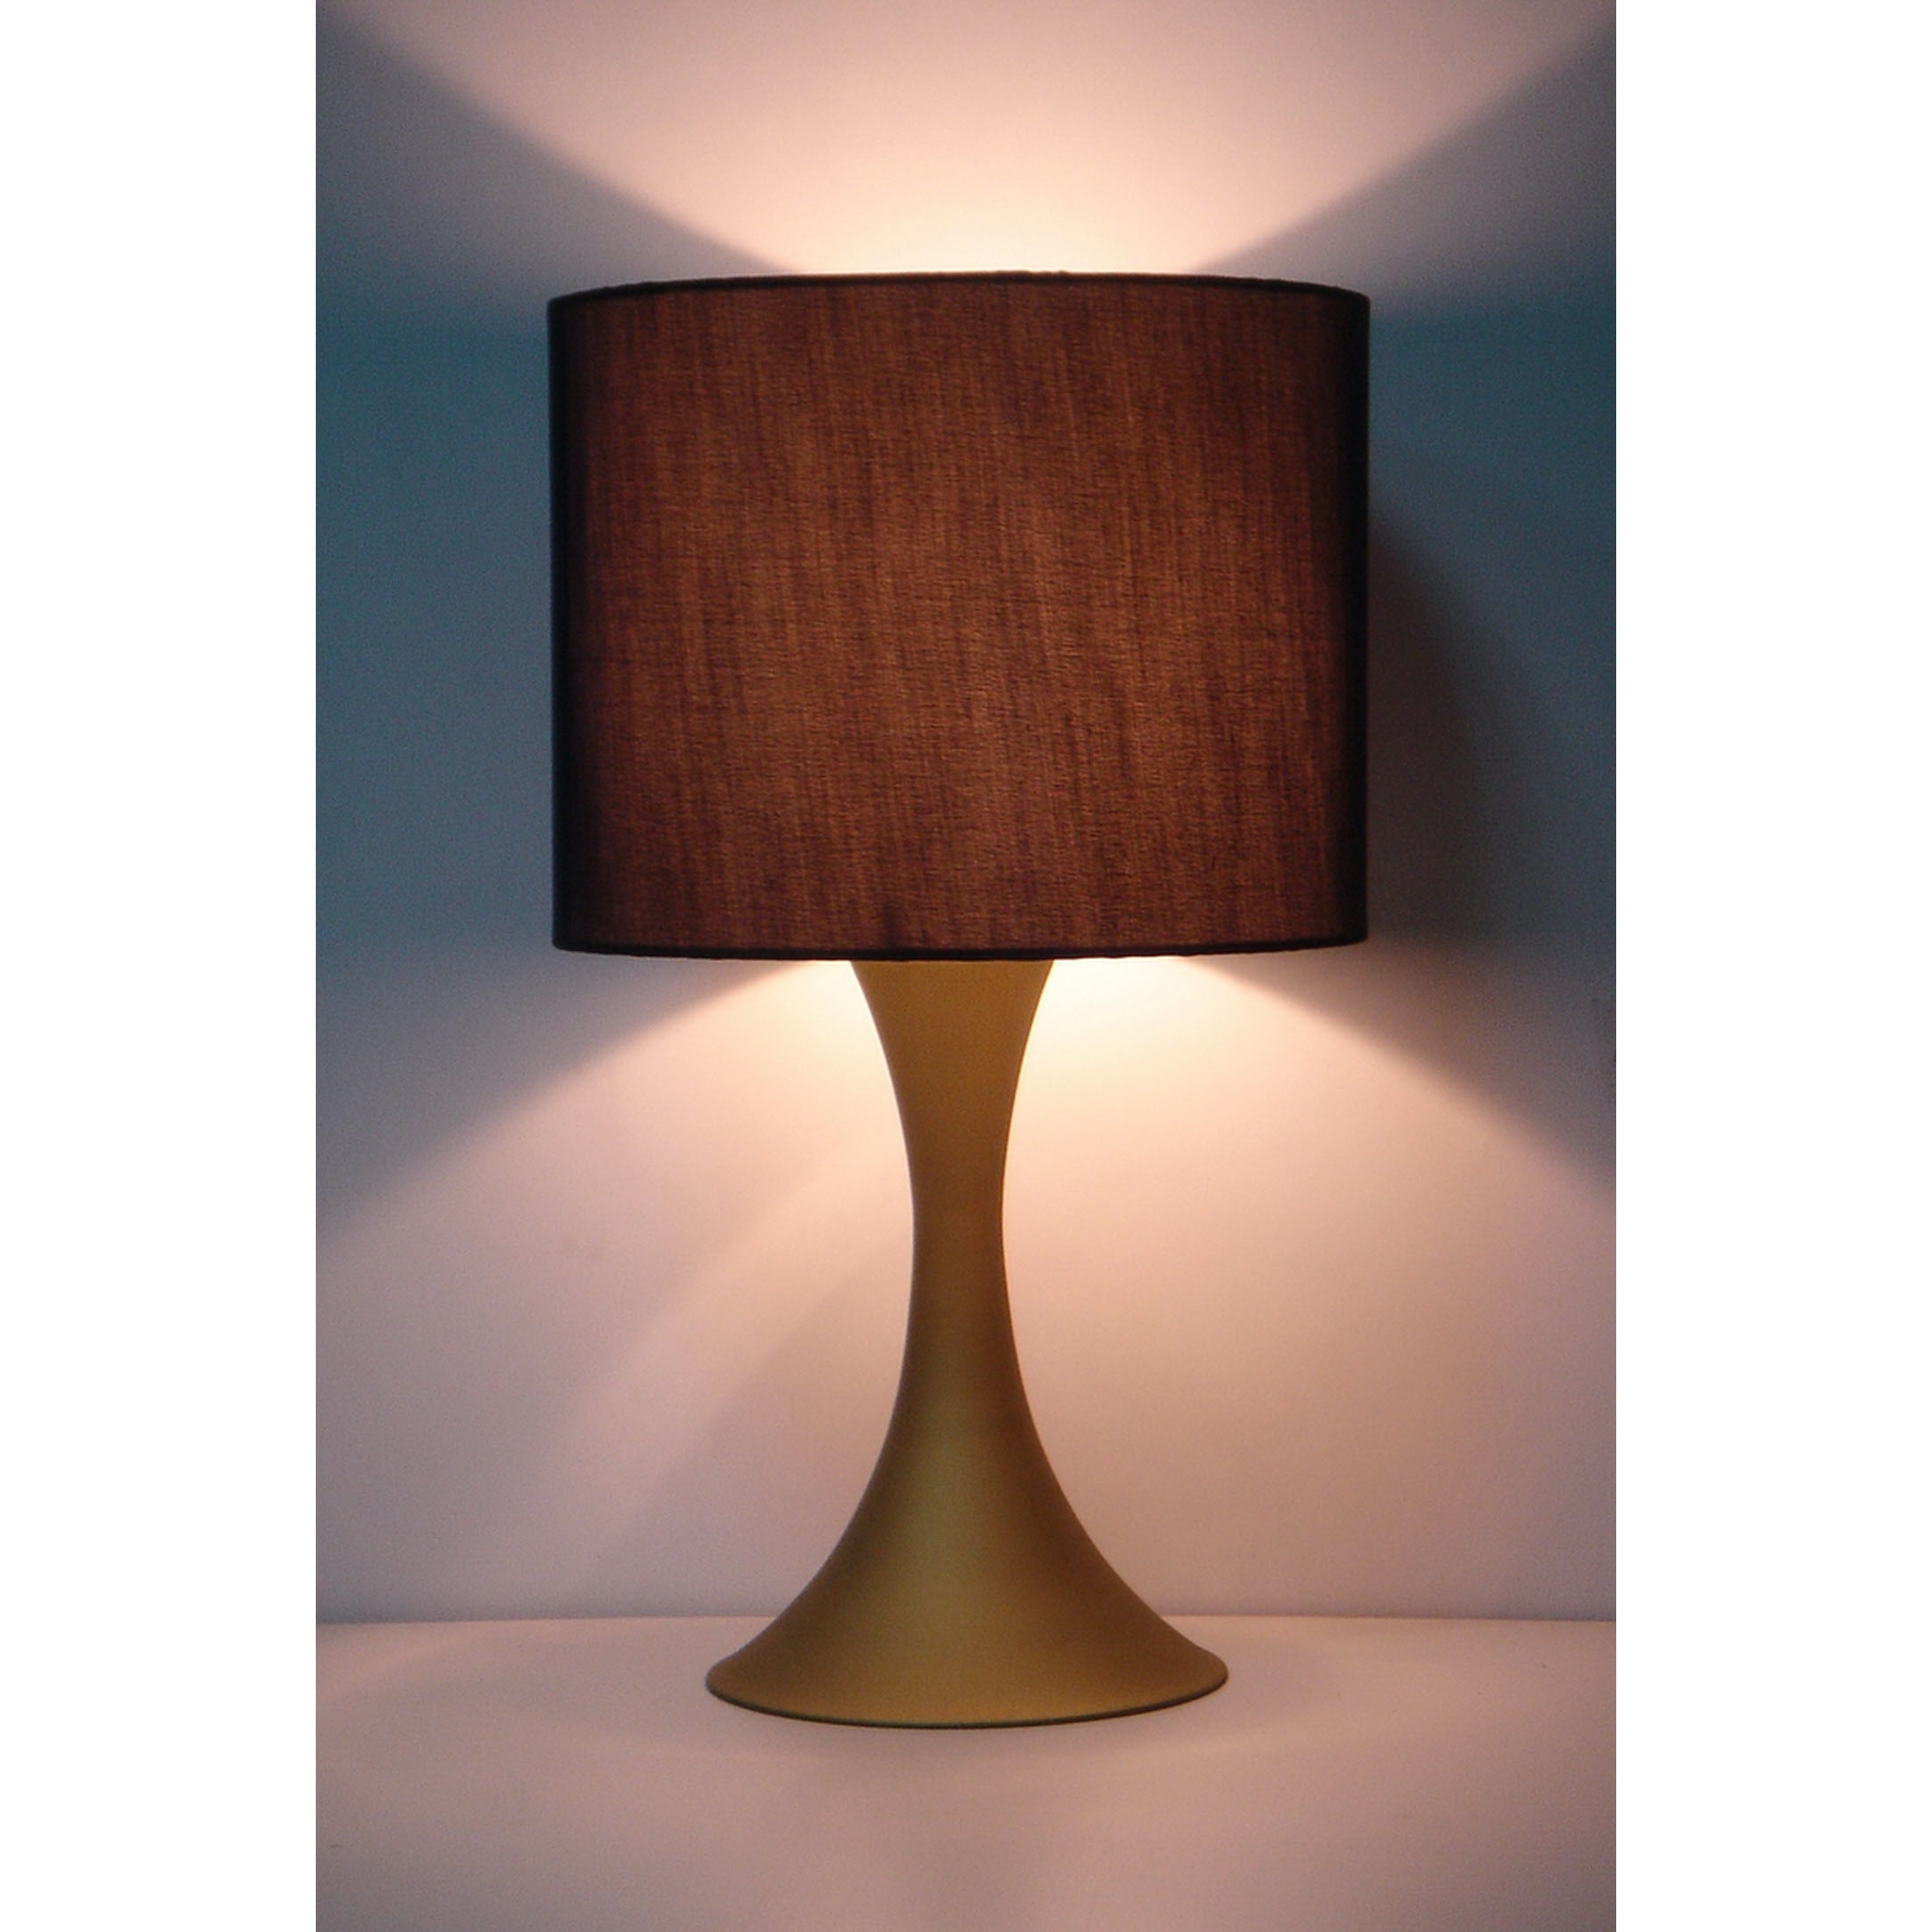 Modern Lamp Shades For Table Lamps : Luxury But Quite Cheap Regarding Newest Table Lamps For Living Room At Ebay (View 9 of 20)